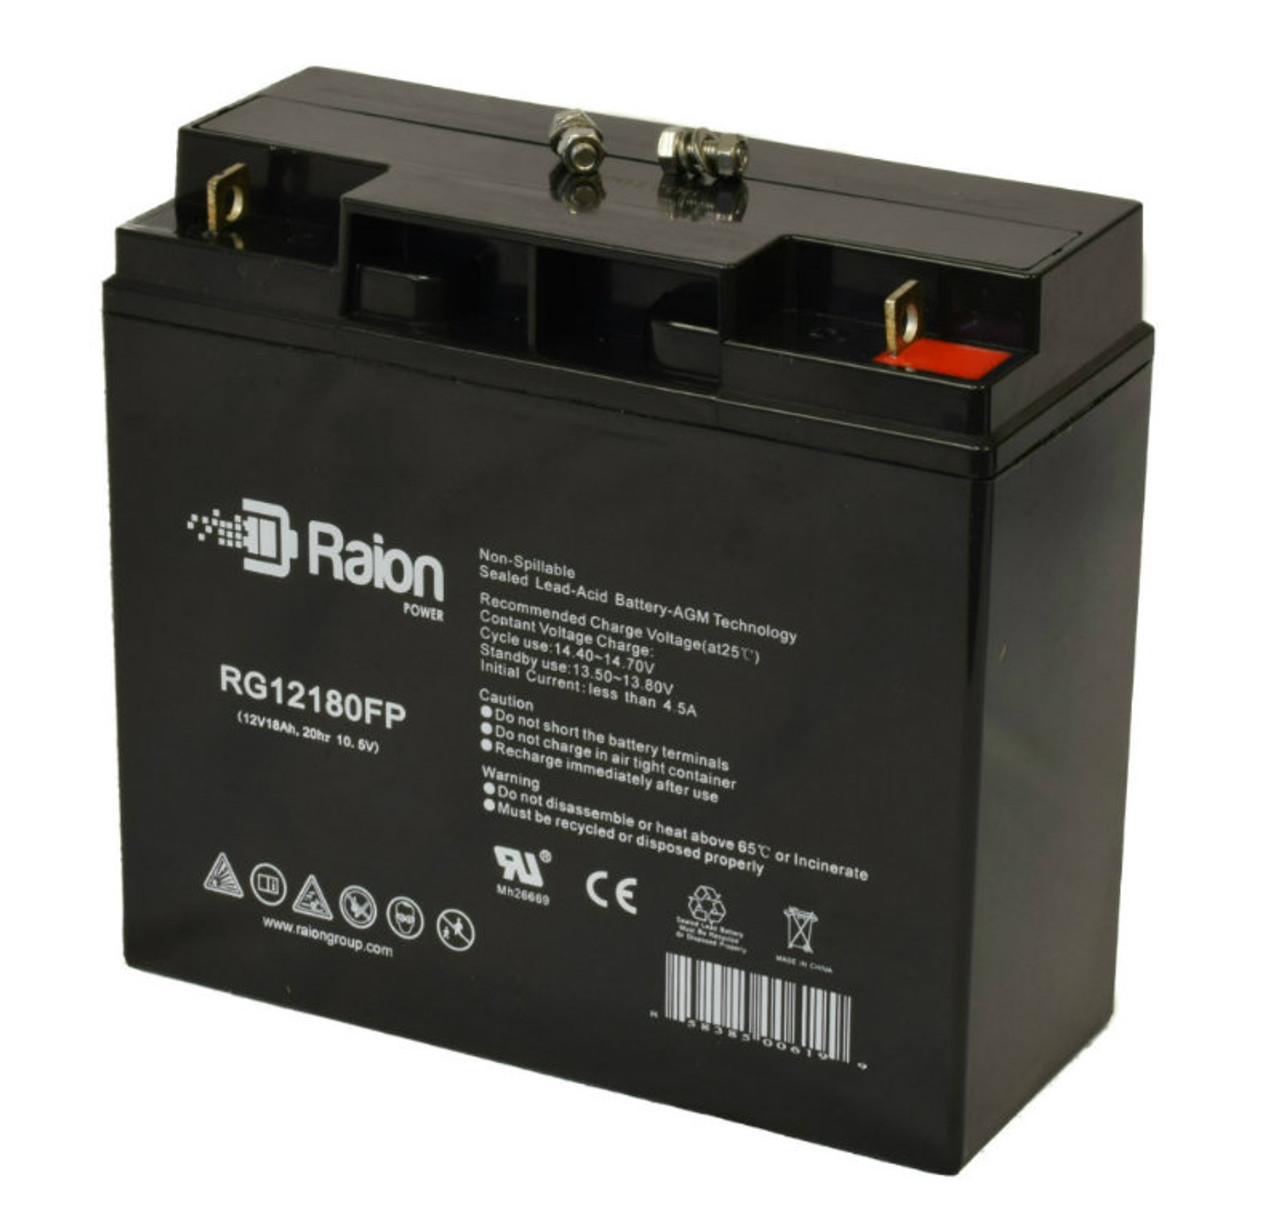 2 Pack Of Raion Power RG12180FP 12V 18Ah Replacement Batteries For Merits Pioneer 1 S235 Deluxe Mobility Scooter